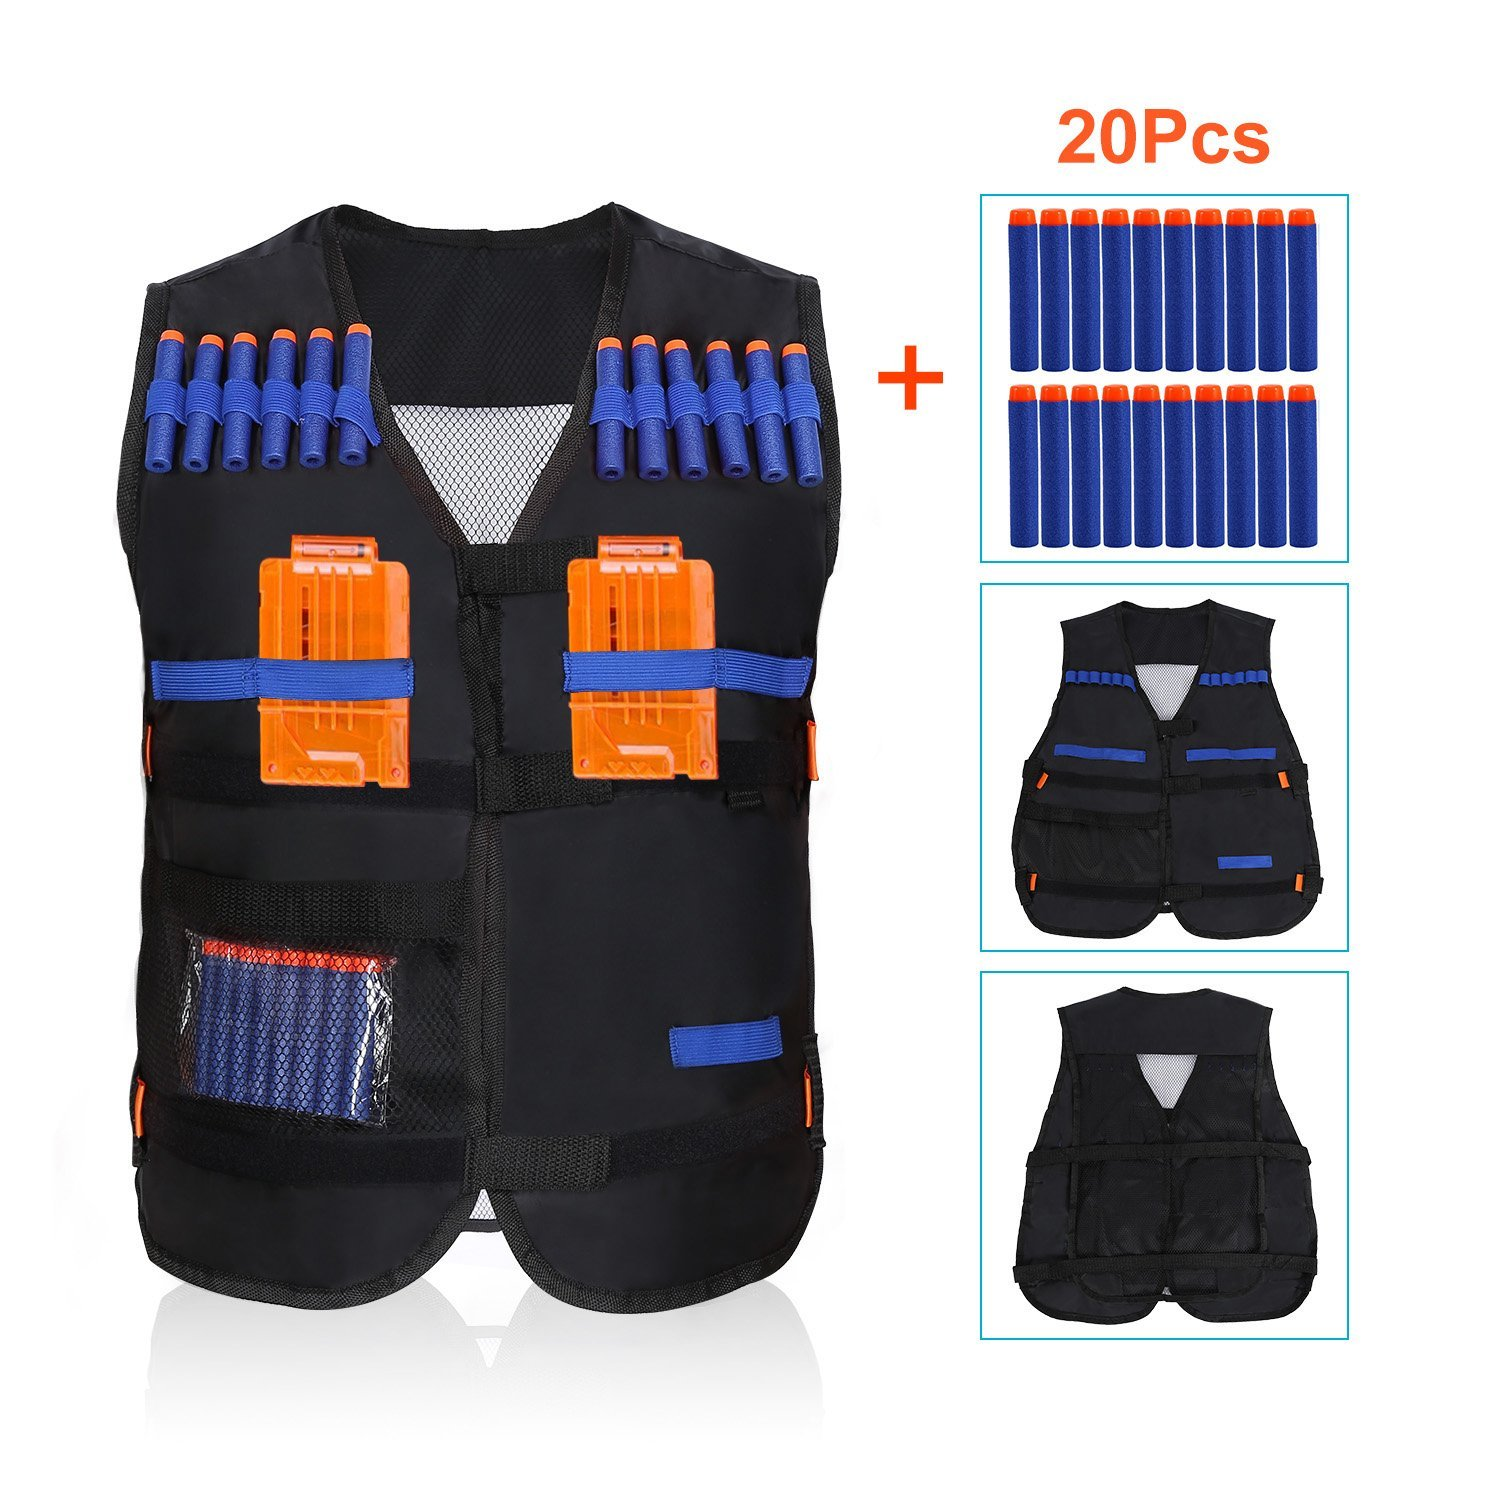 Yosoo Kids Elite Tactical Vest with 20 Pcs Soft Foam Darts for N-strike Elite Series(Not Including 2 Clips)